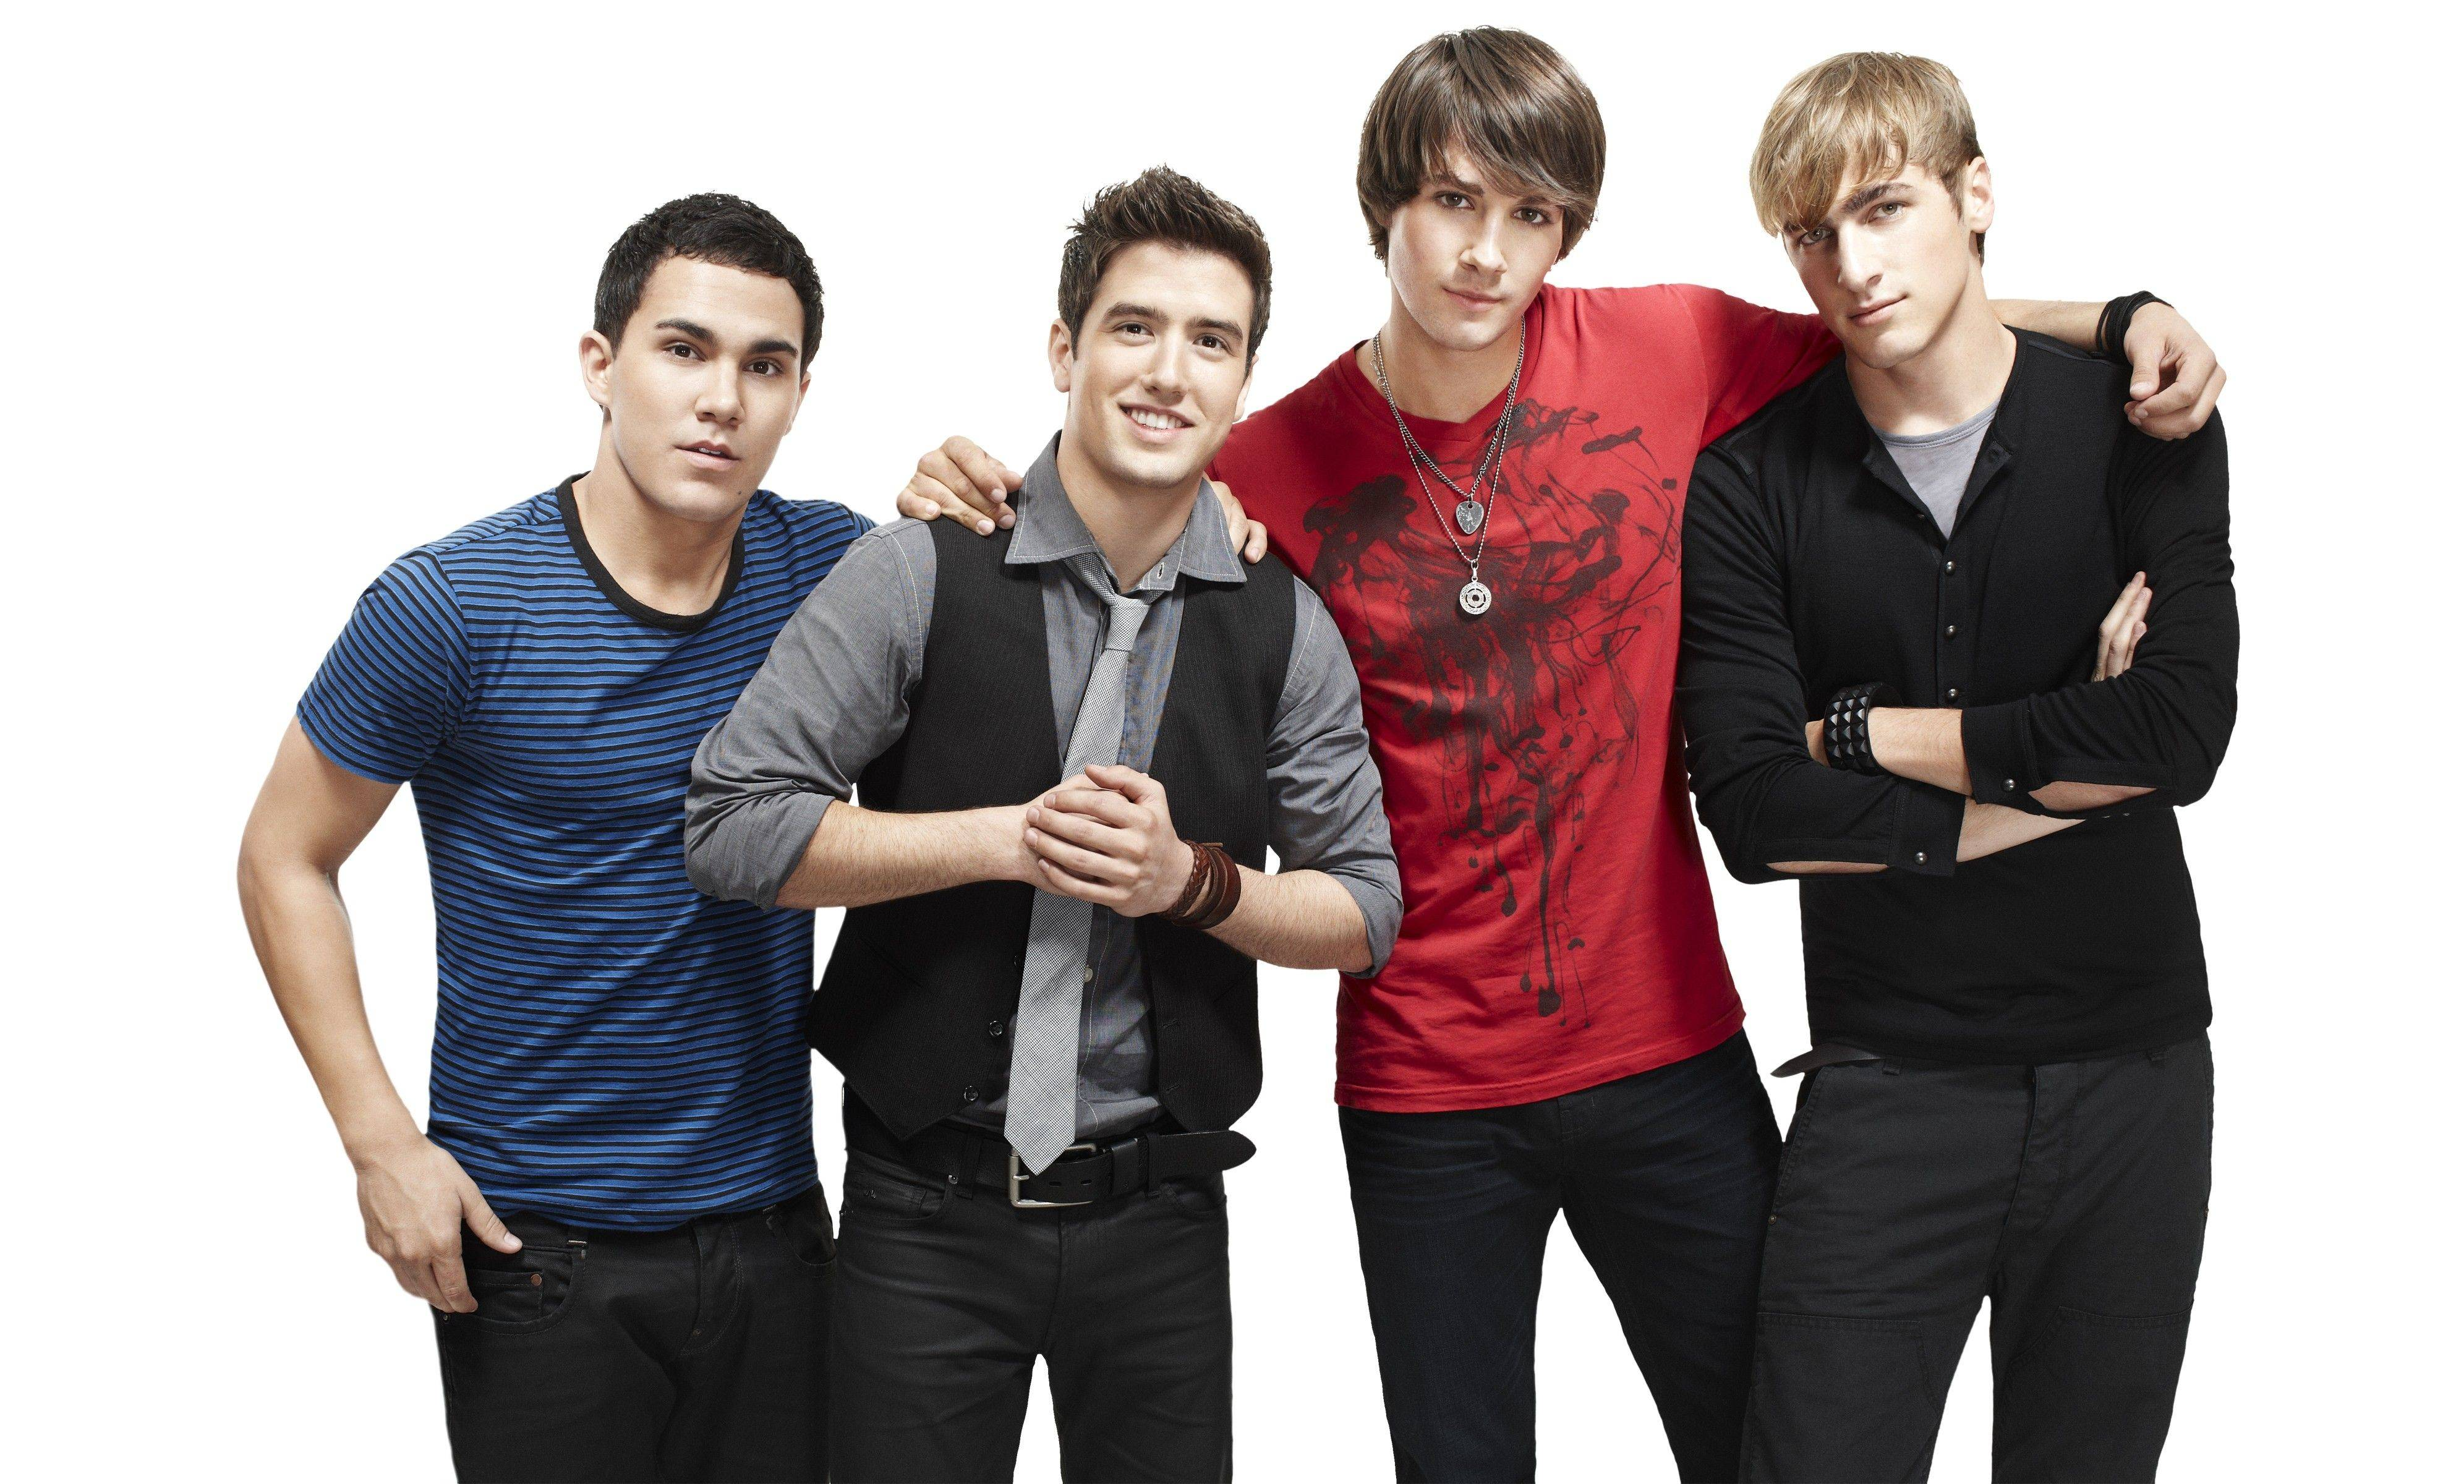 Nickelodeon boy-band Big Time Rush comes to Rosemont